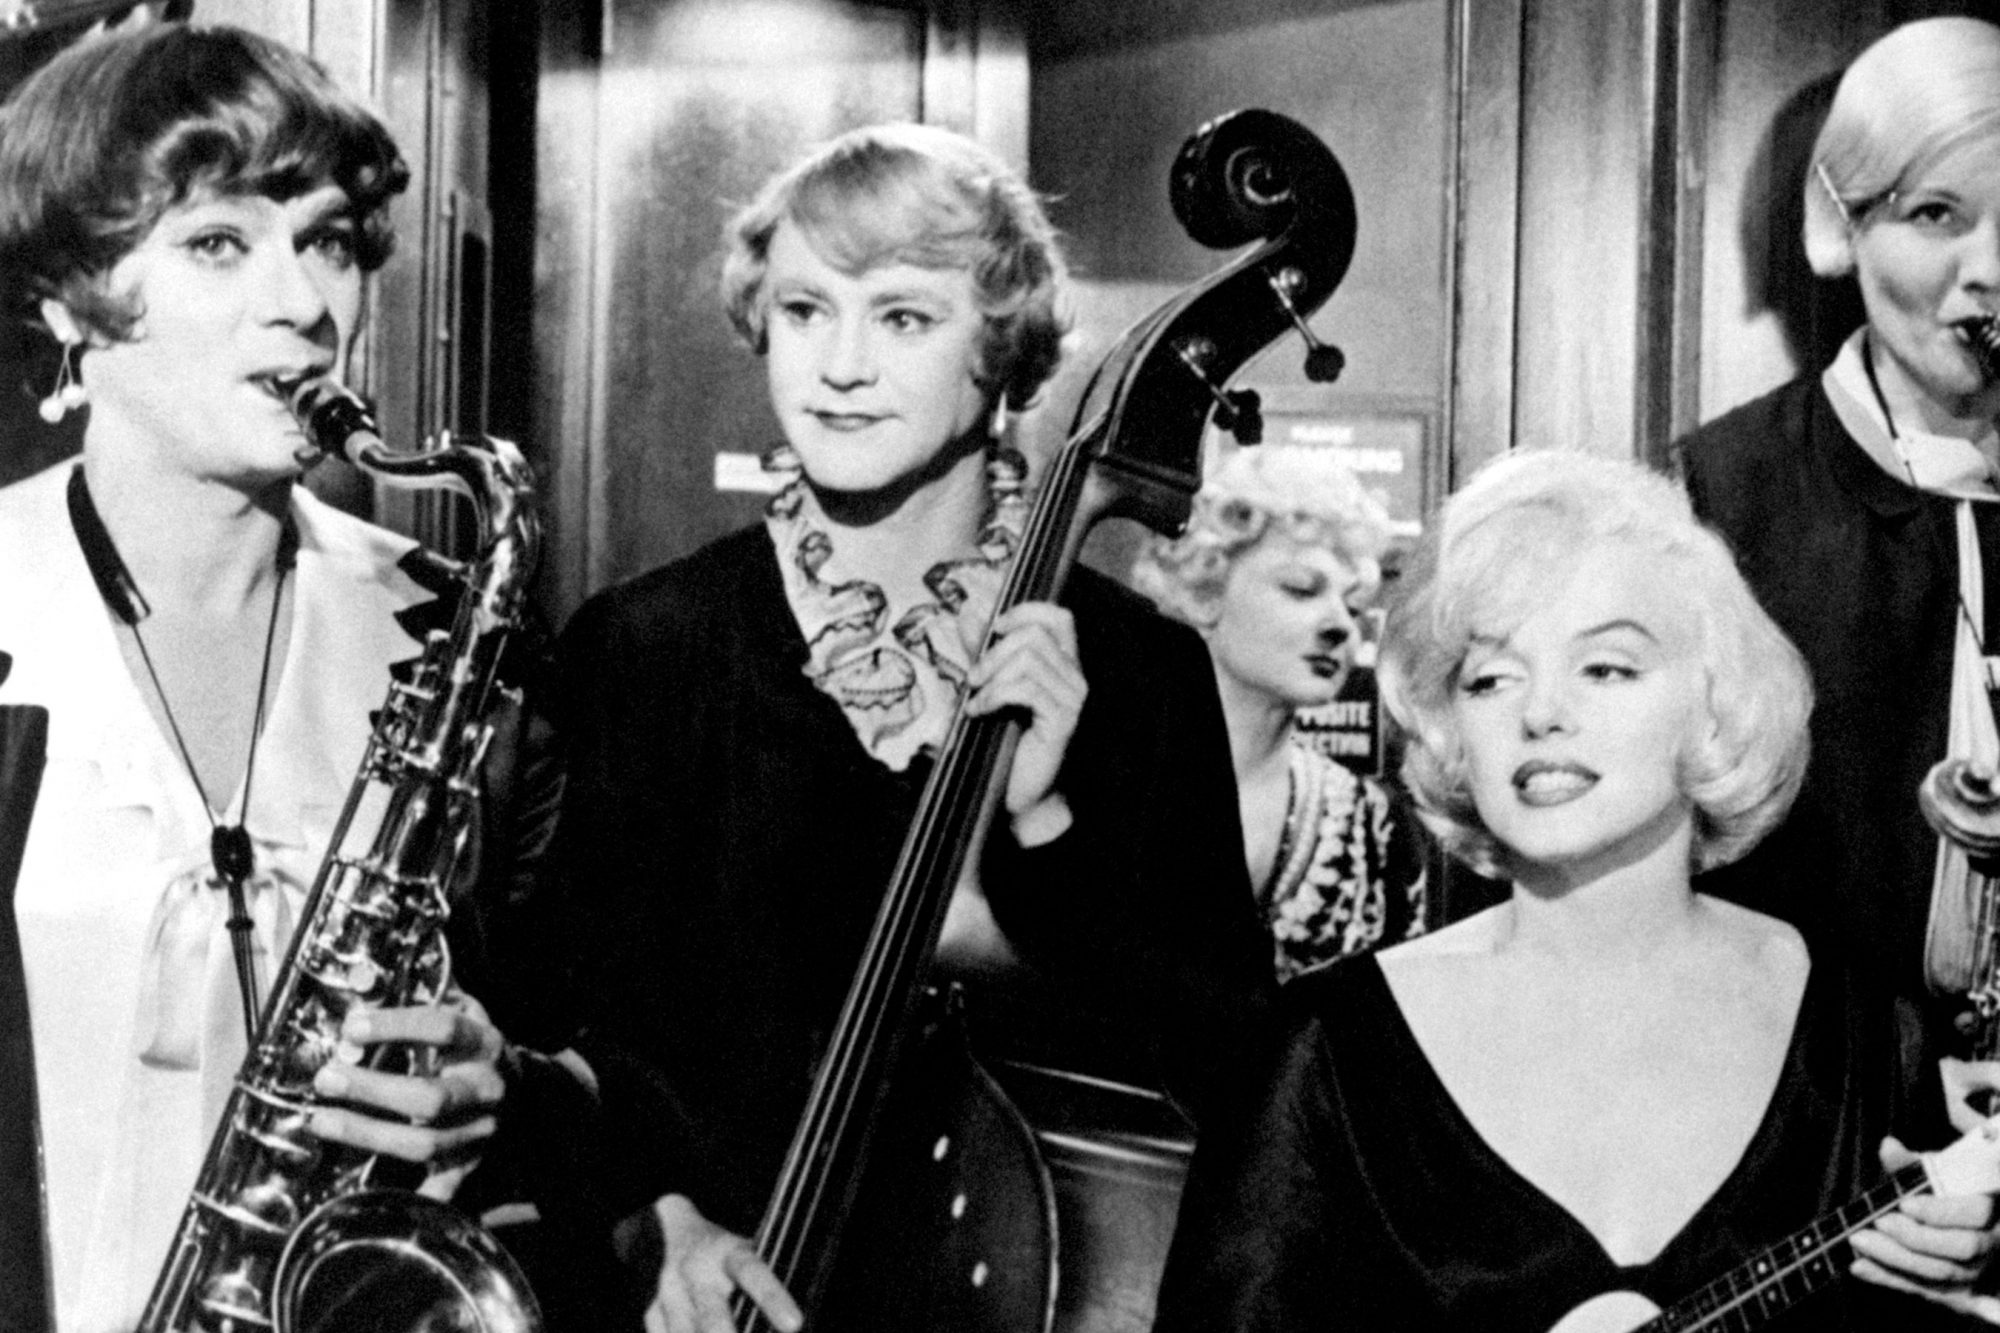 Tony Curtis, Jack Lemmon, Marilyn Monroe, Joan Shawlee and Berverly Wills in the film Some Like It Hot